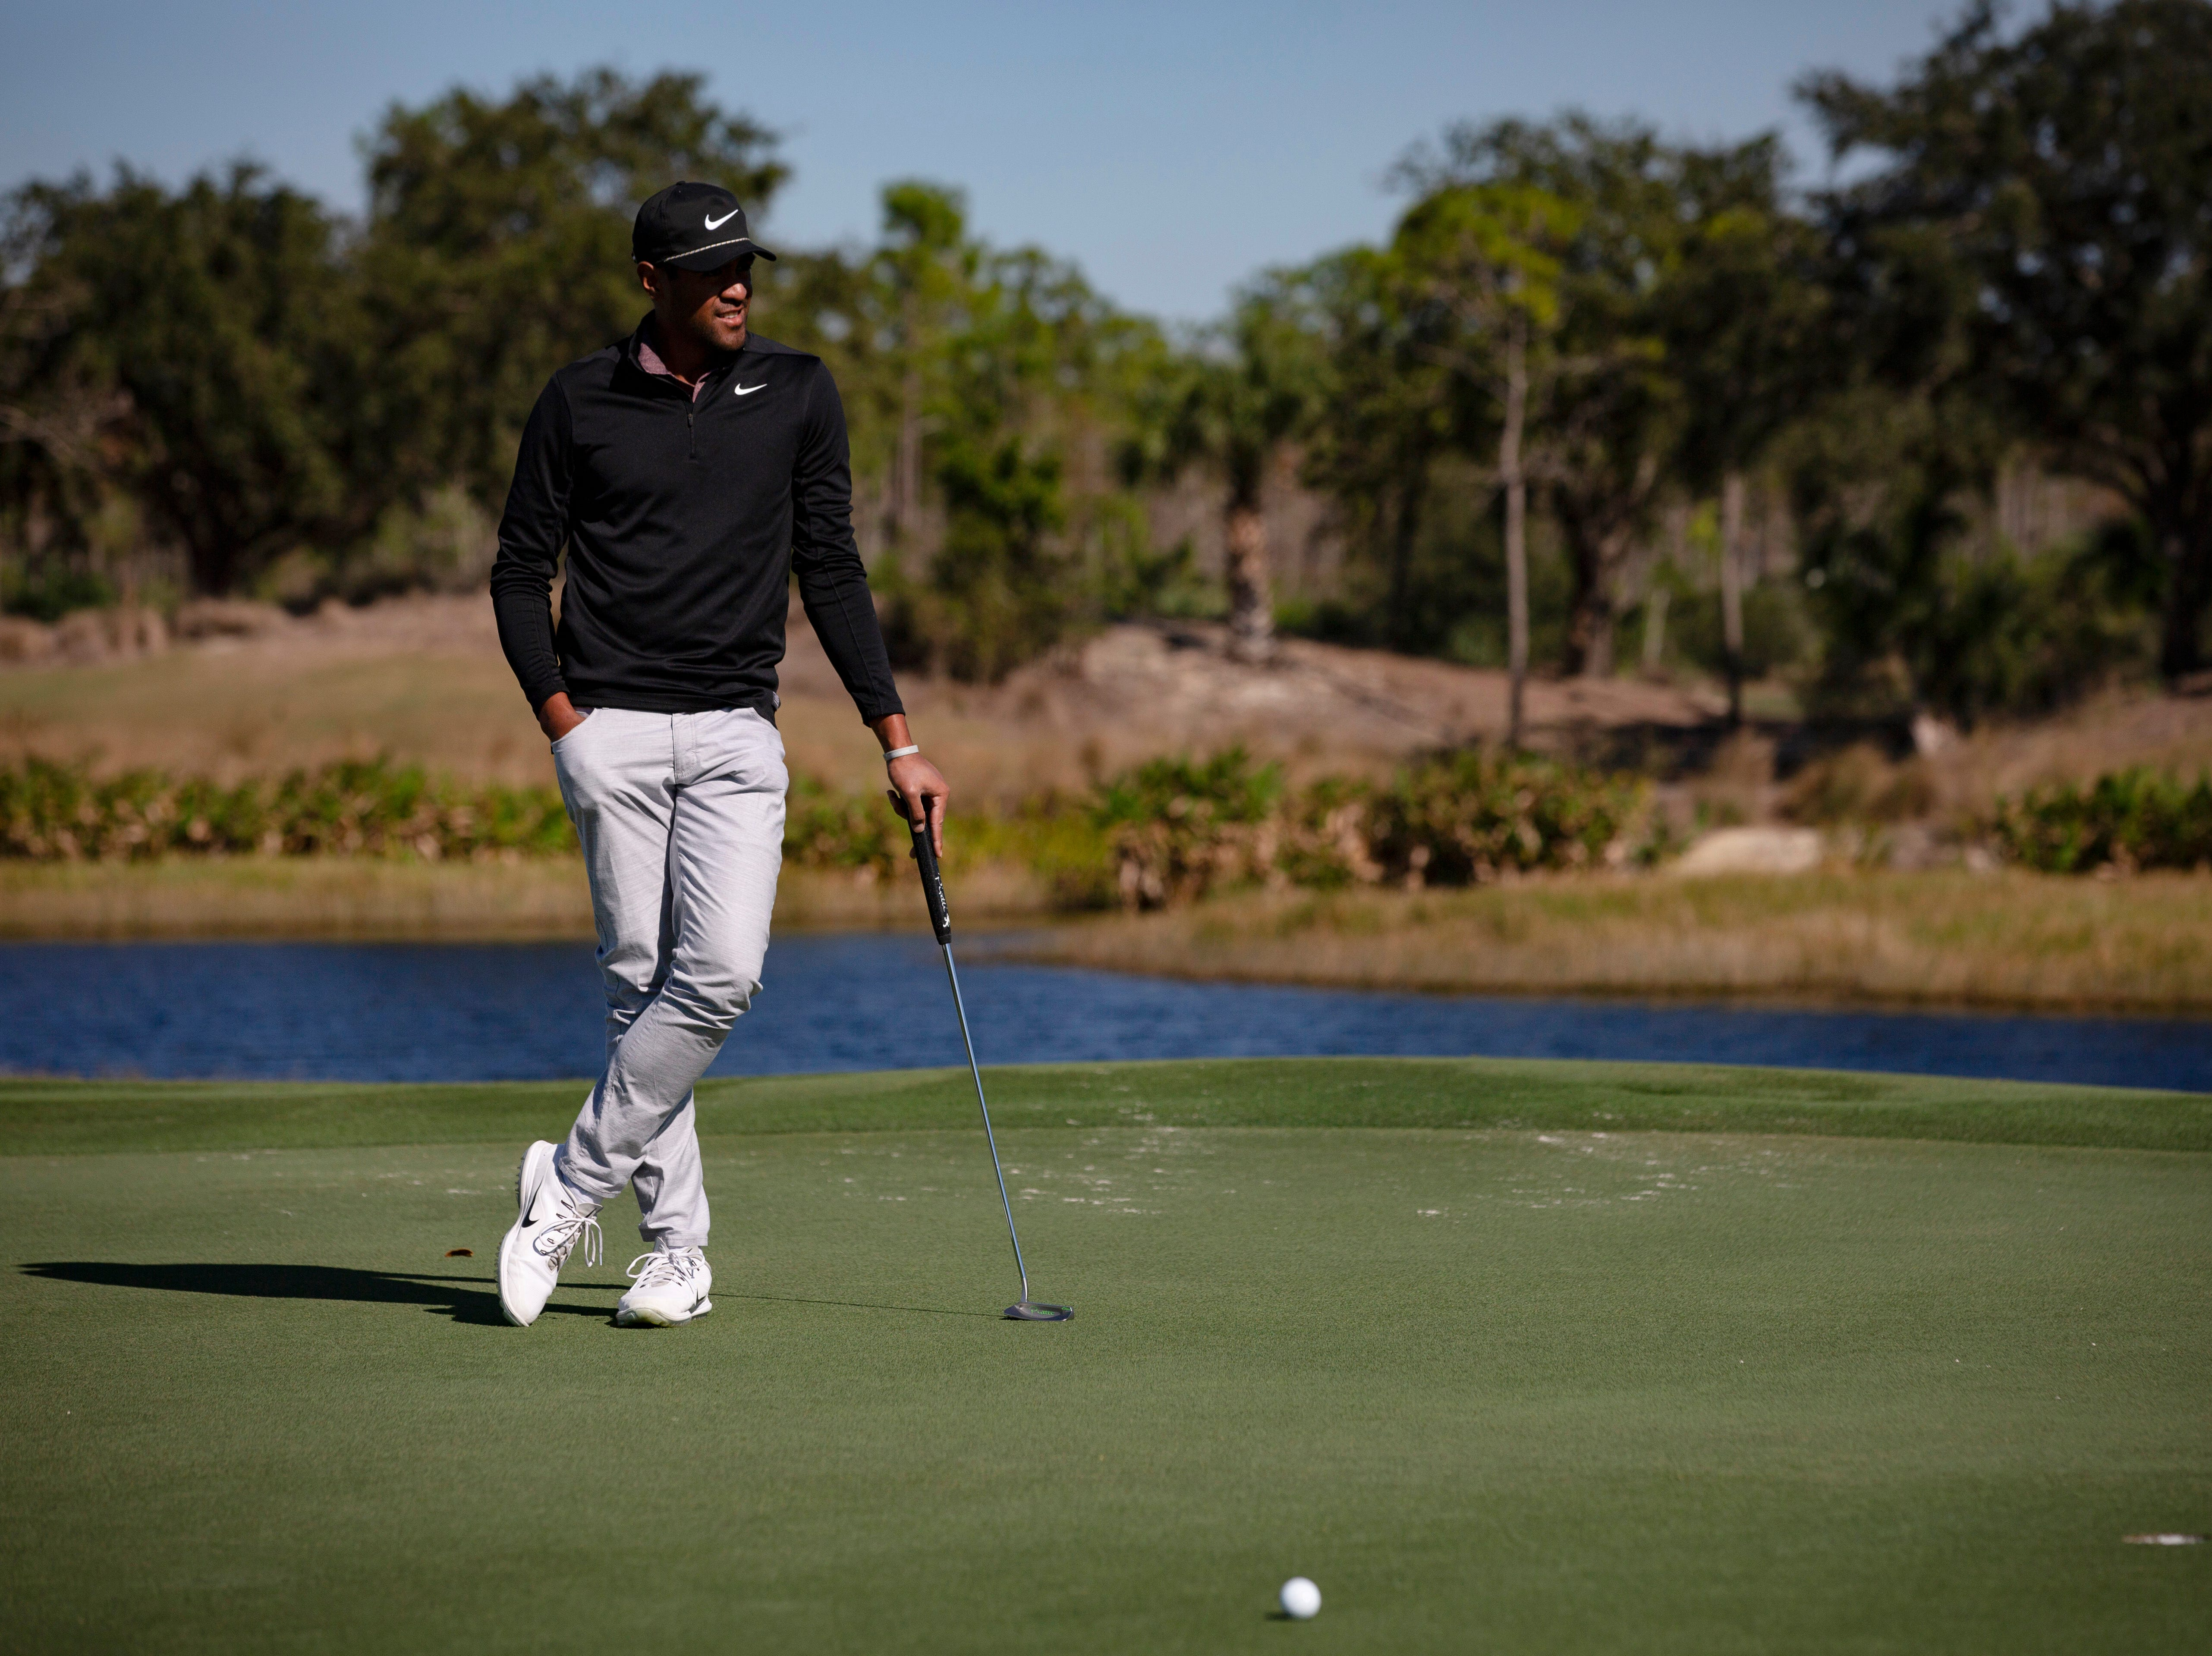 Tony Finau of Utah, waits to take his swing during the first Pro - Amateur round of the 30th annual QBE Shootout at Tiburón Golf Club on Wednesday, Dec. 5, 2018.